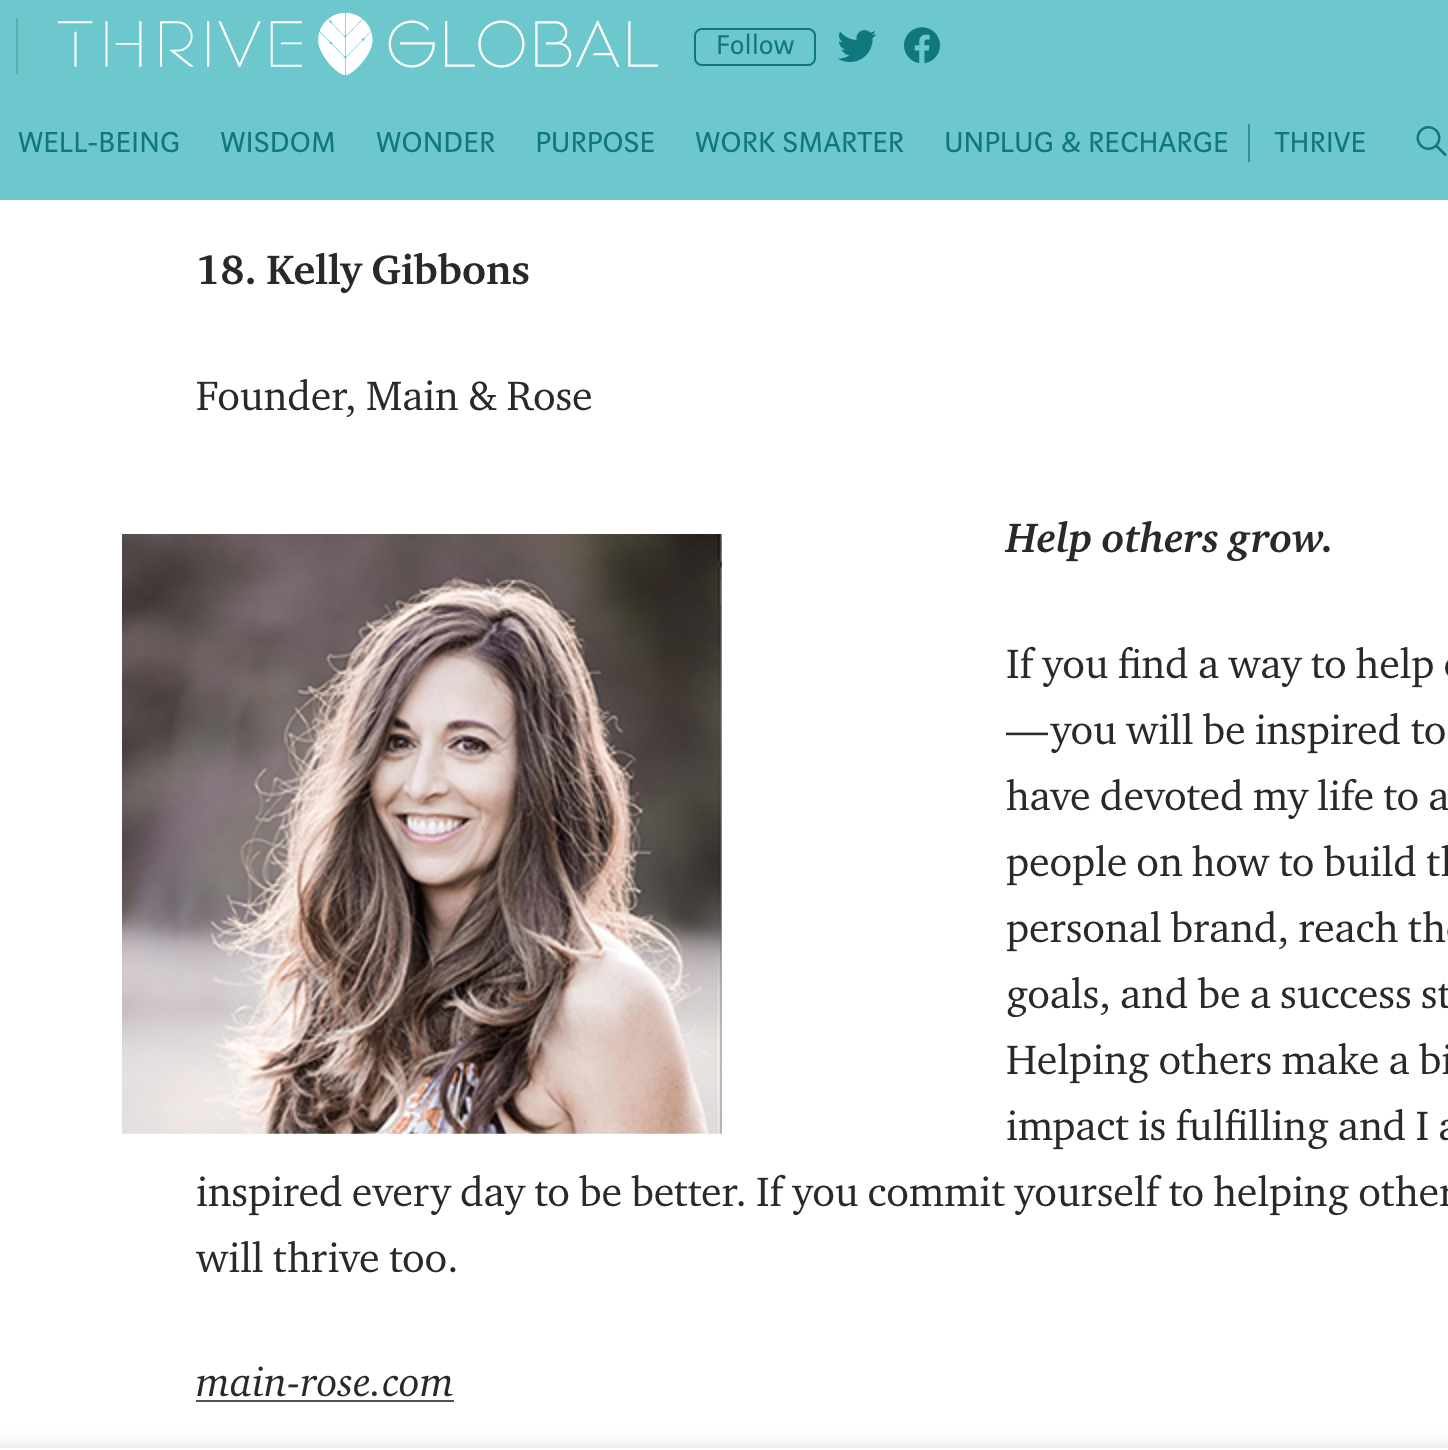 thrive global main rose beth kelly gibbons